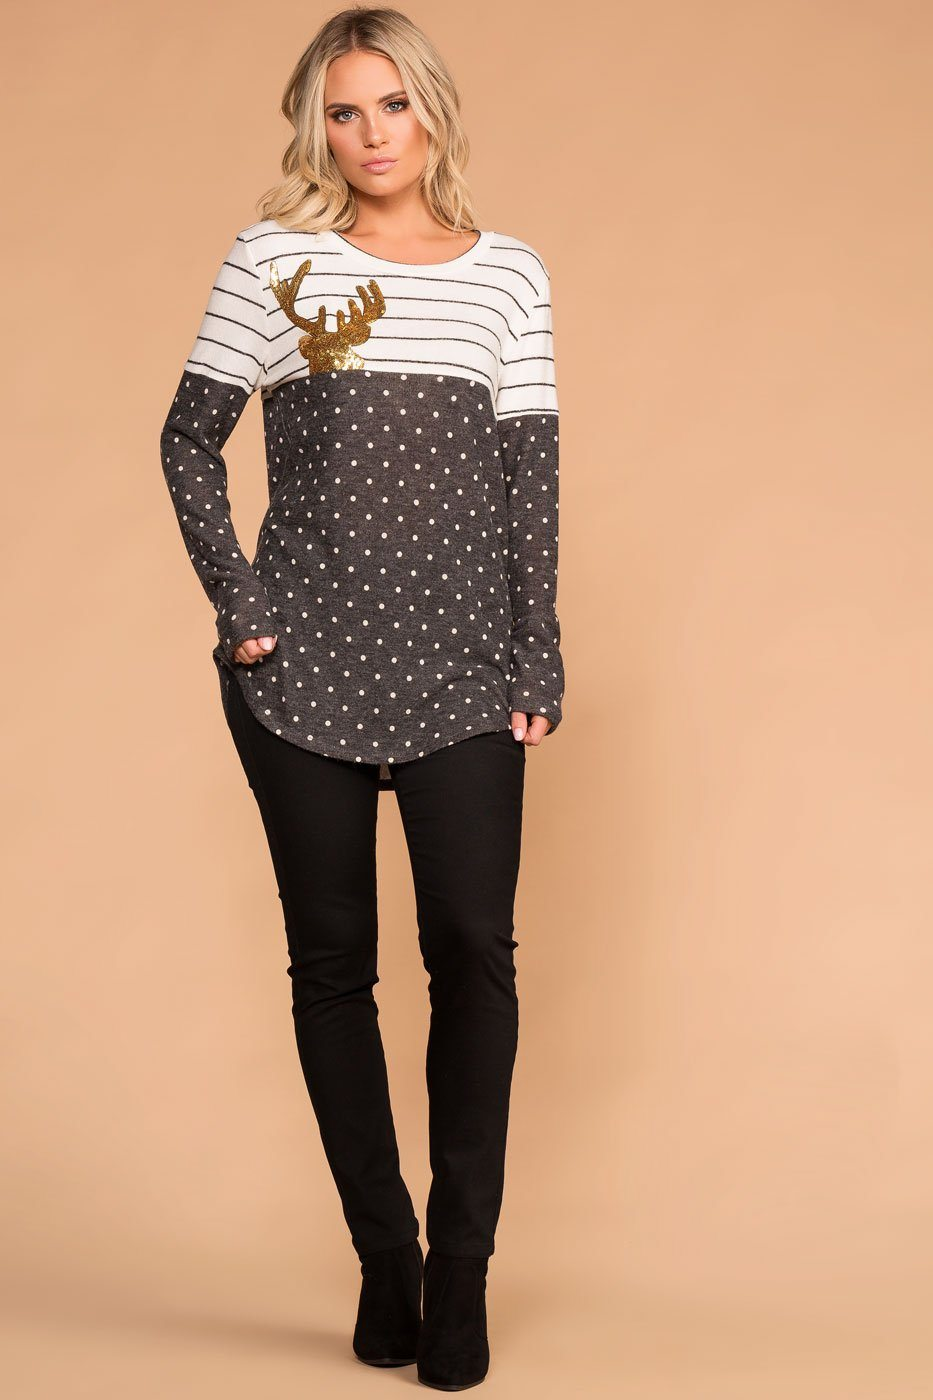 Reindeer Dot and Striped Sequin Top